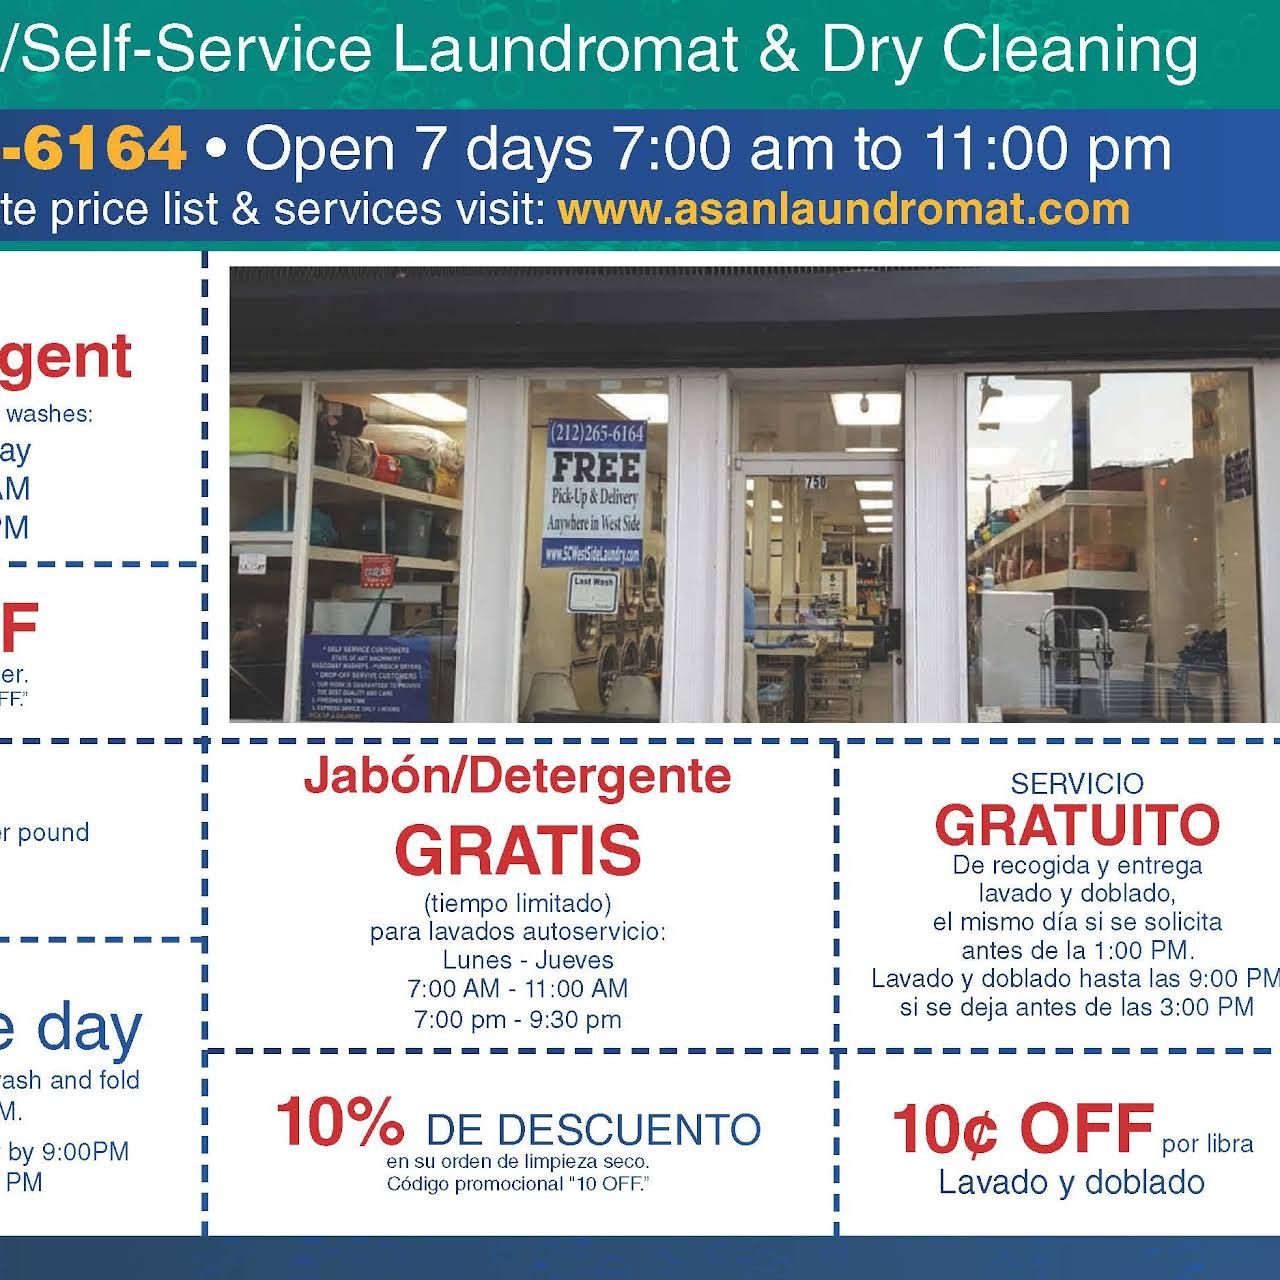 Asan Laundromat Dry Cleaning Full Self Service